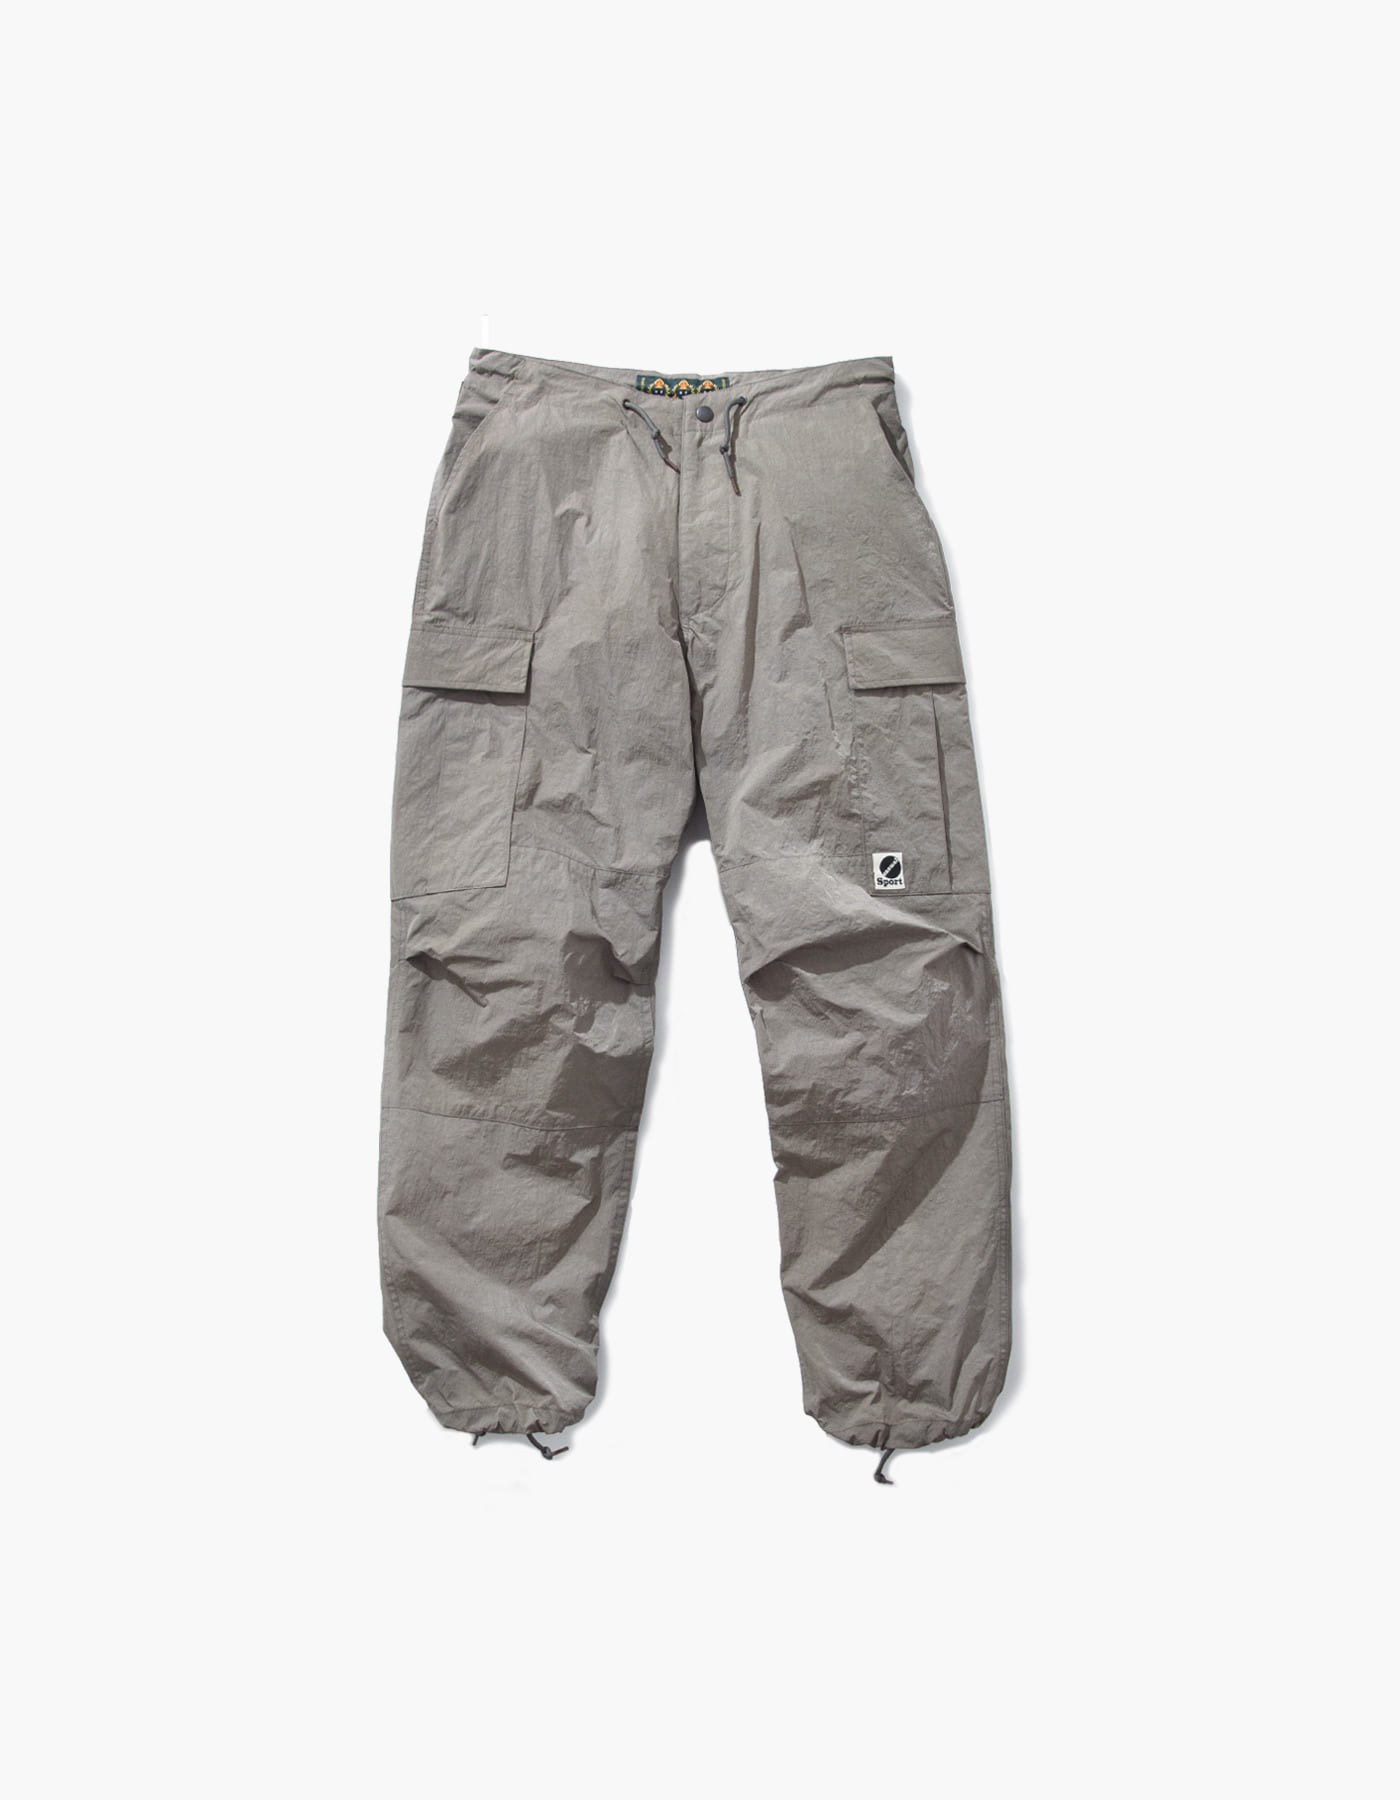 SALT NYLON CARGO PANTS / GREY